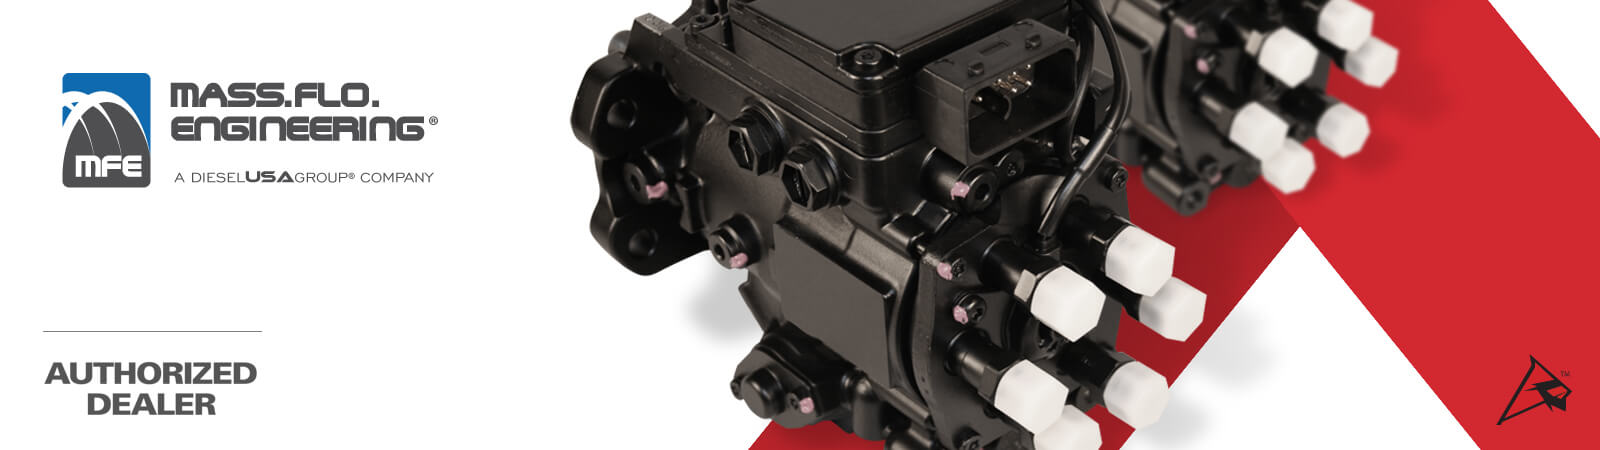 Cardinal Parts | Mass Flo Engineering Diesel Products